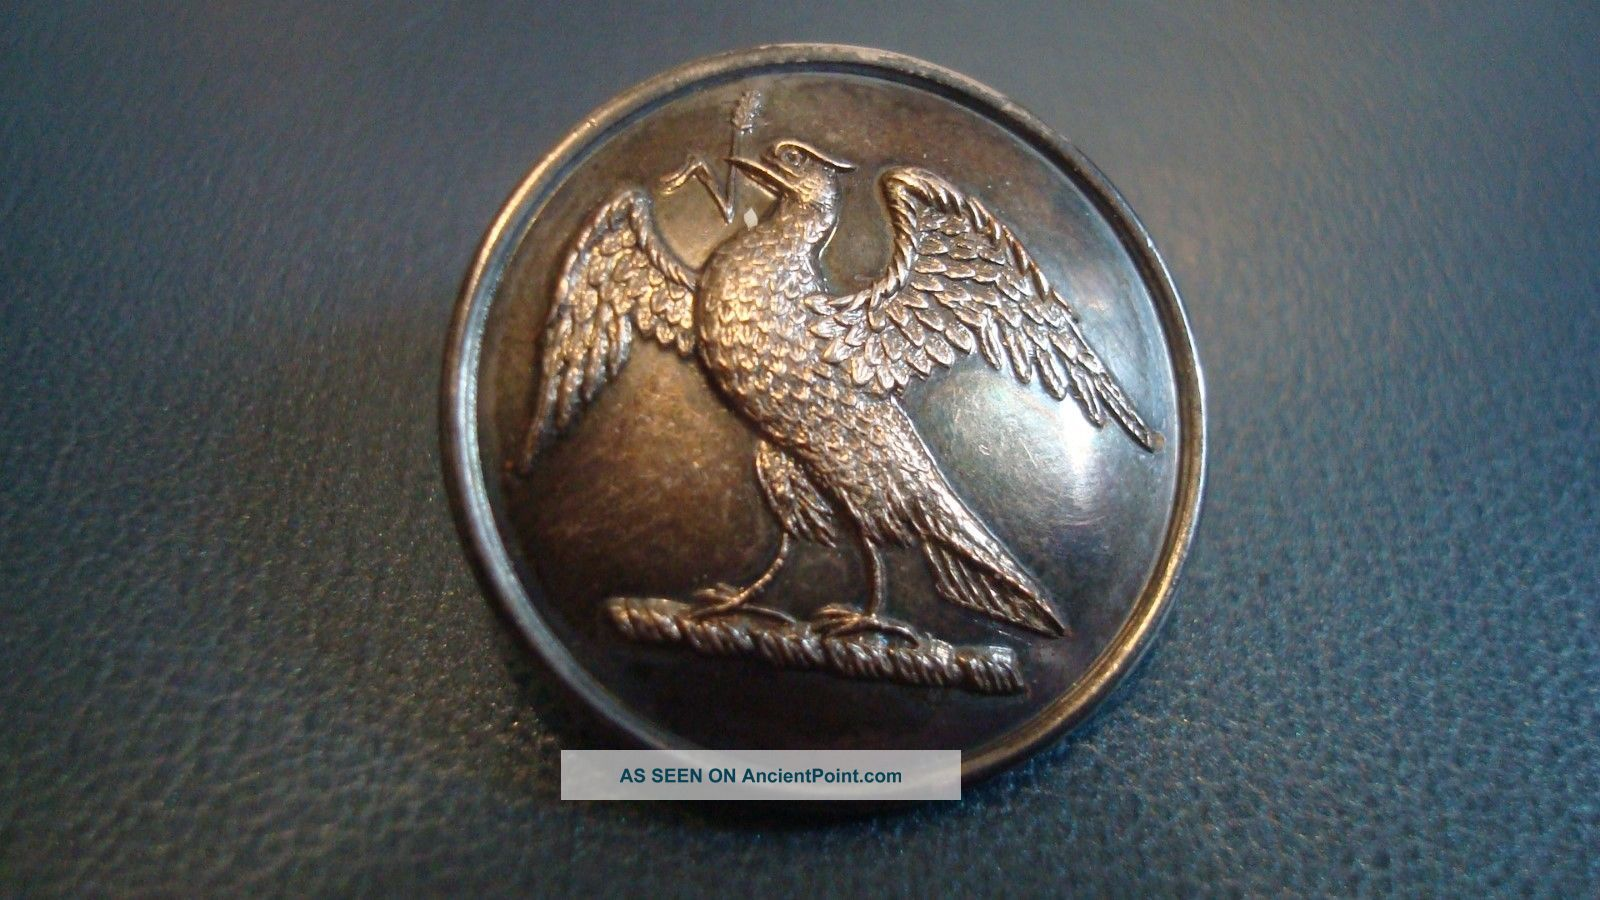 Antque Livery Bird With Outstretched Wings Single Shank Button.  London. Buttons photo